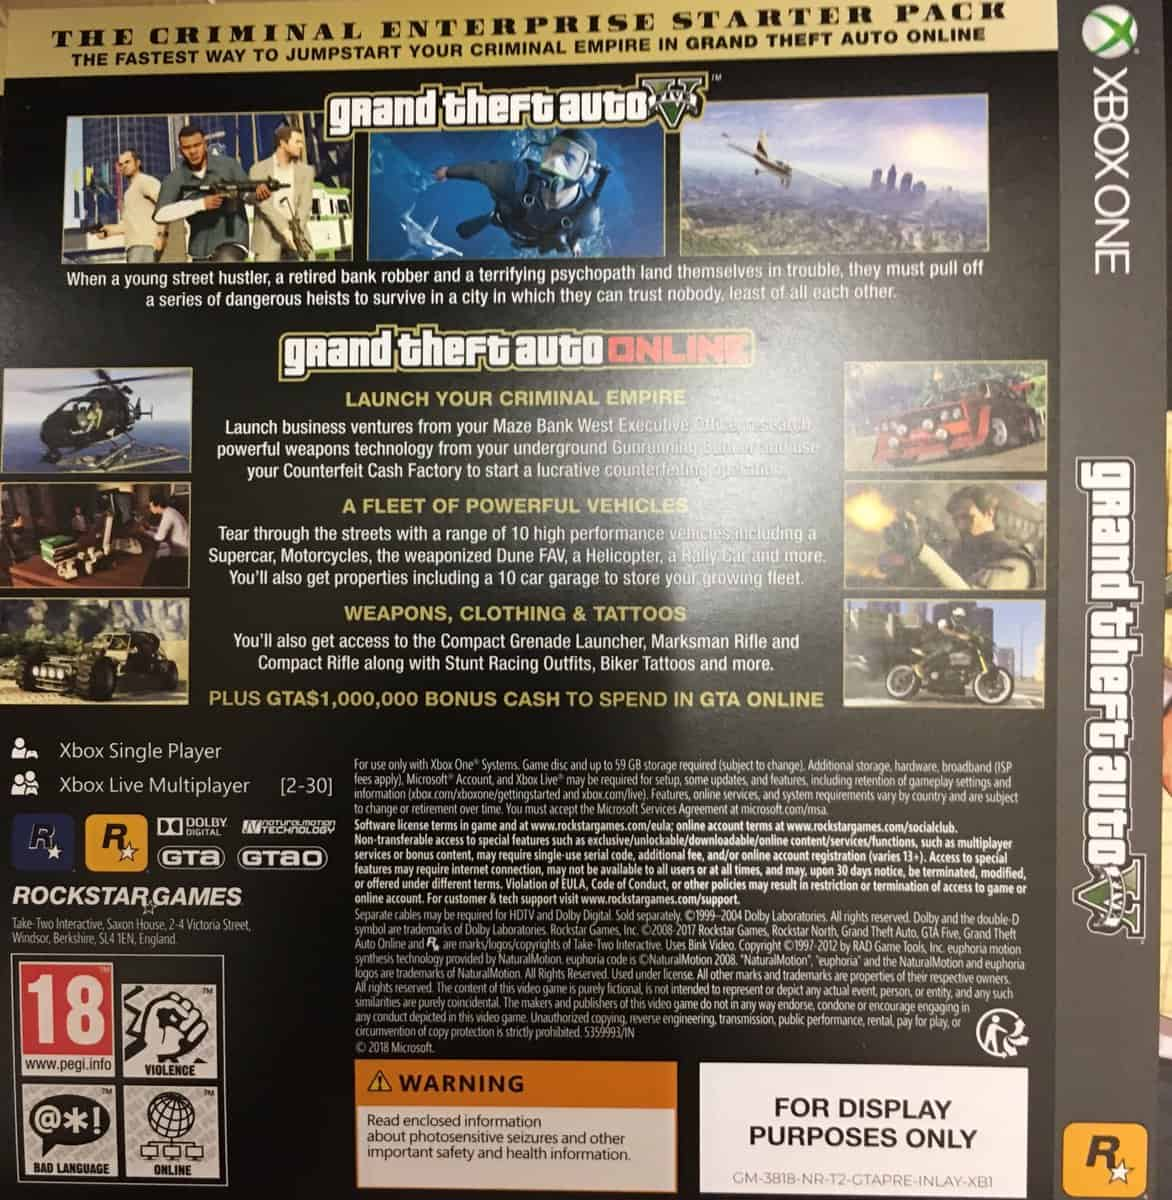 GTA 5 Premium Online Edition Confirmed By Box Shots, Available At